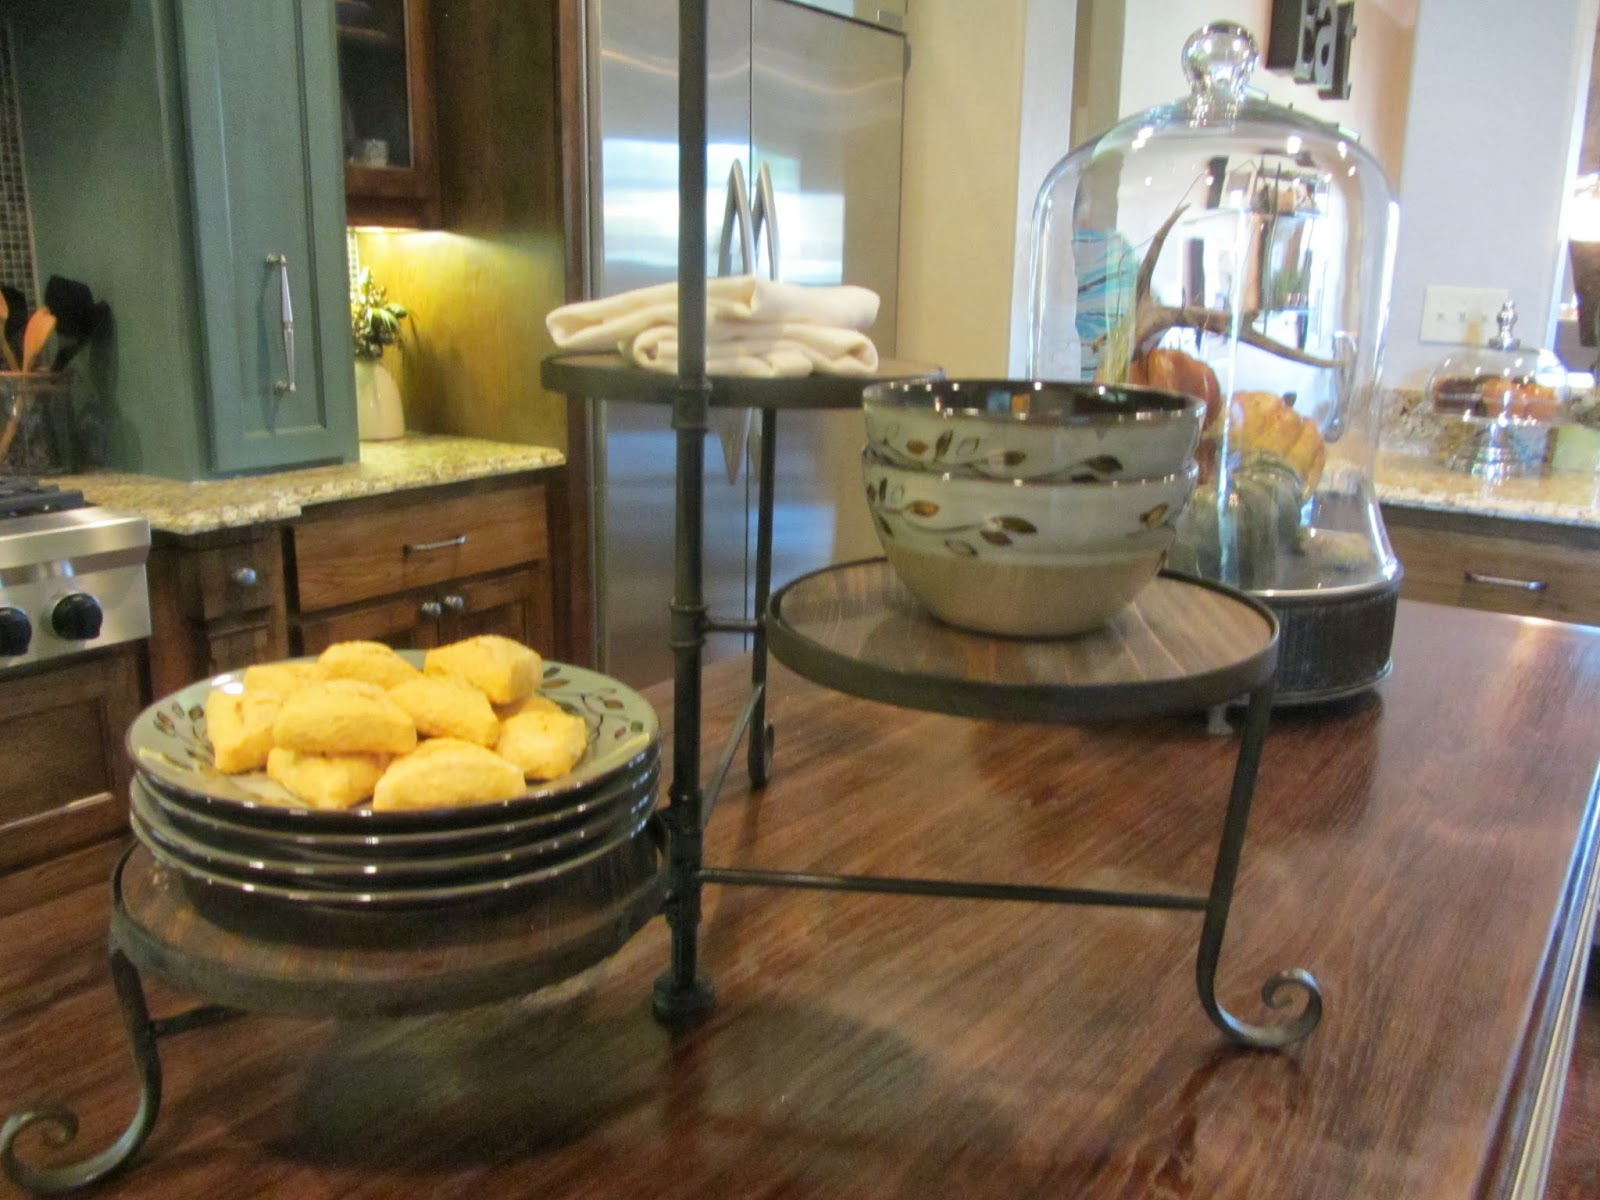 The cool Freestanding kitchen pantry photo images